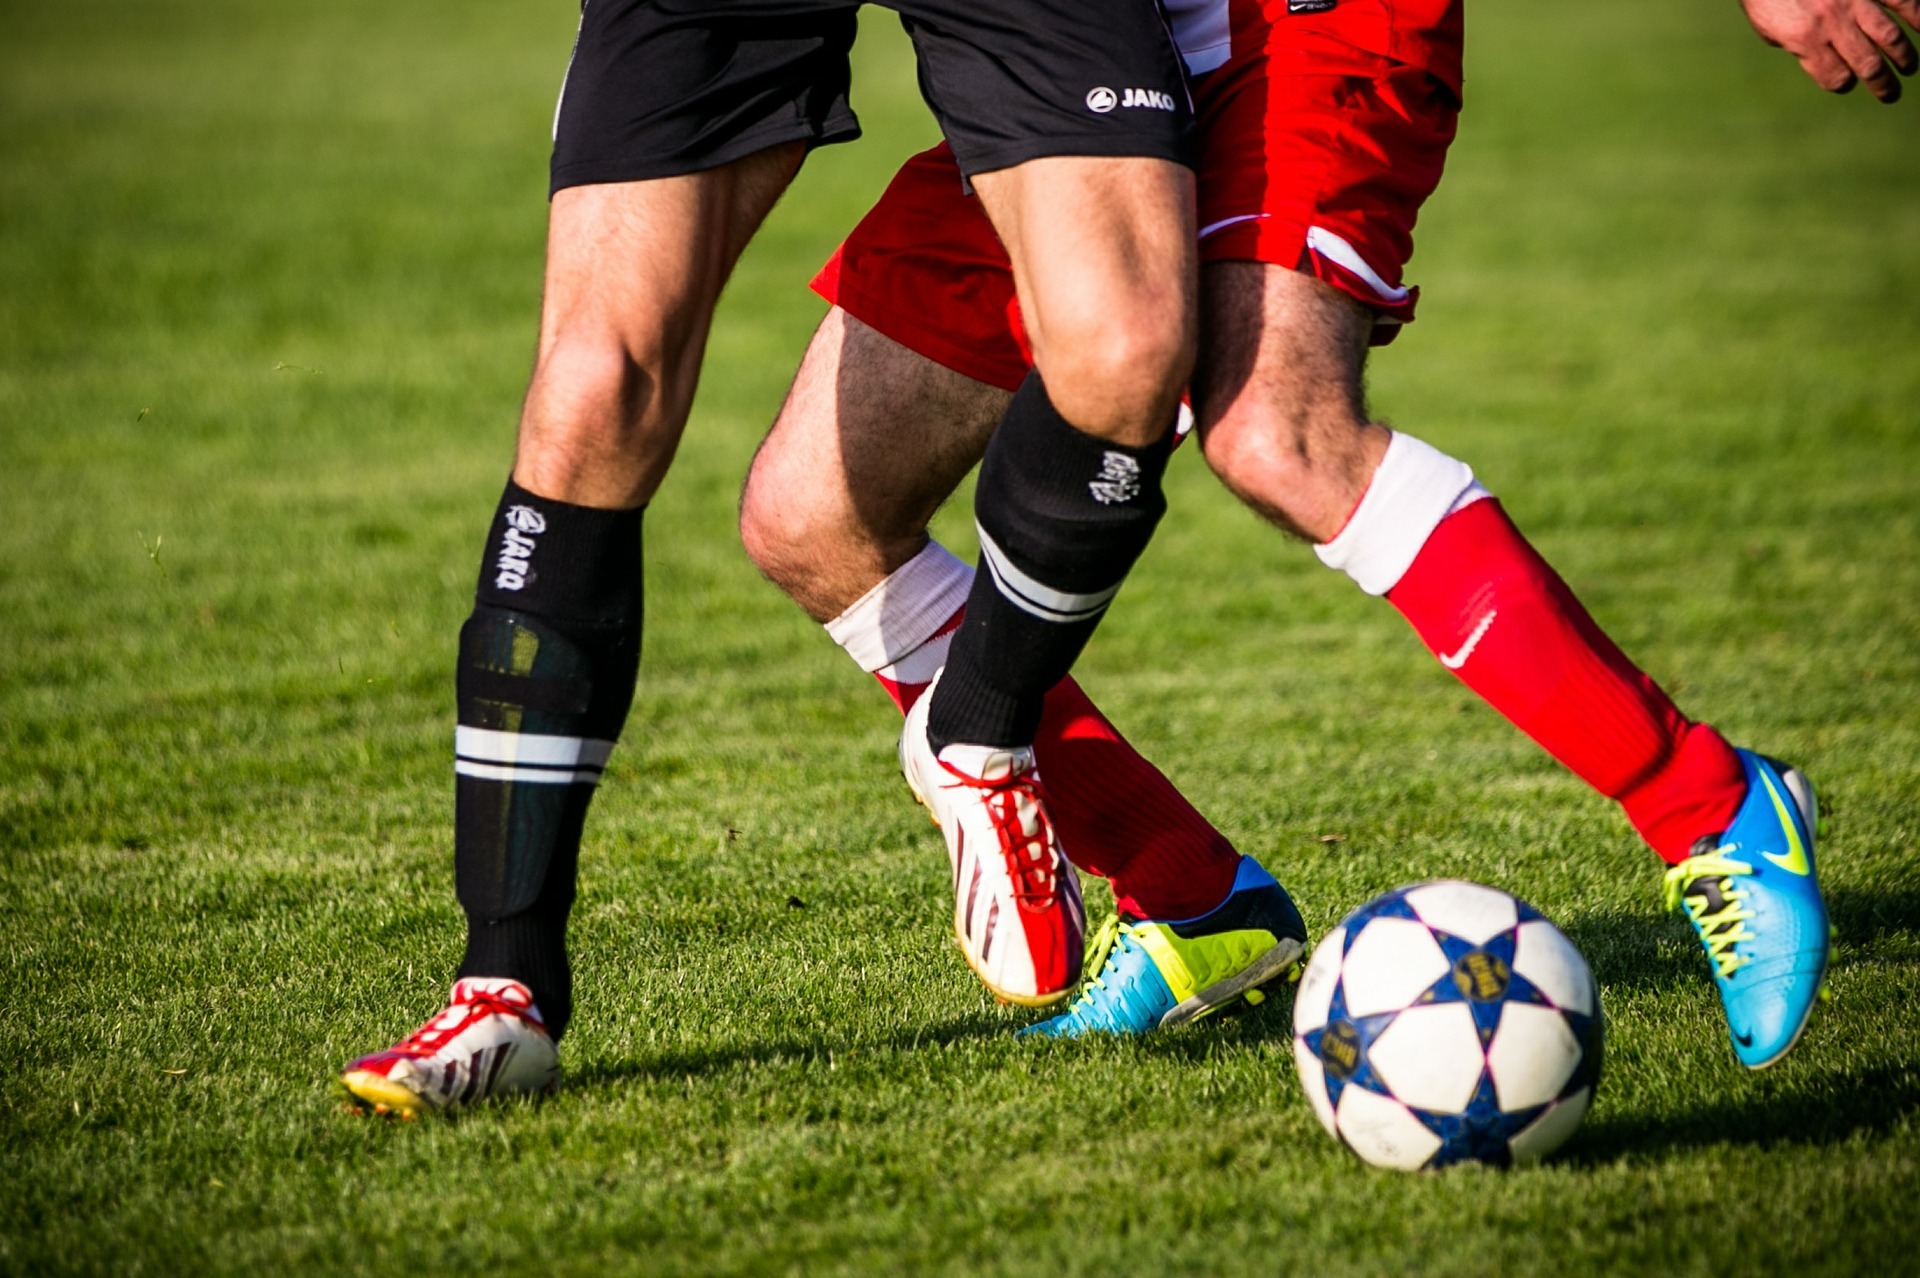 Police to play alongside Watford FC and Arsenal footballers